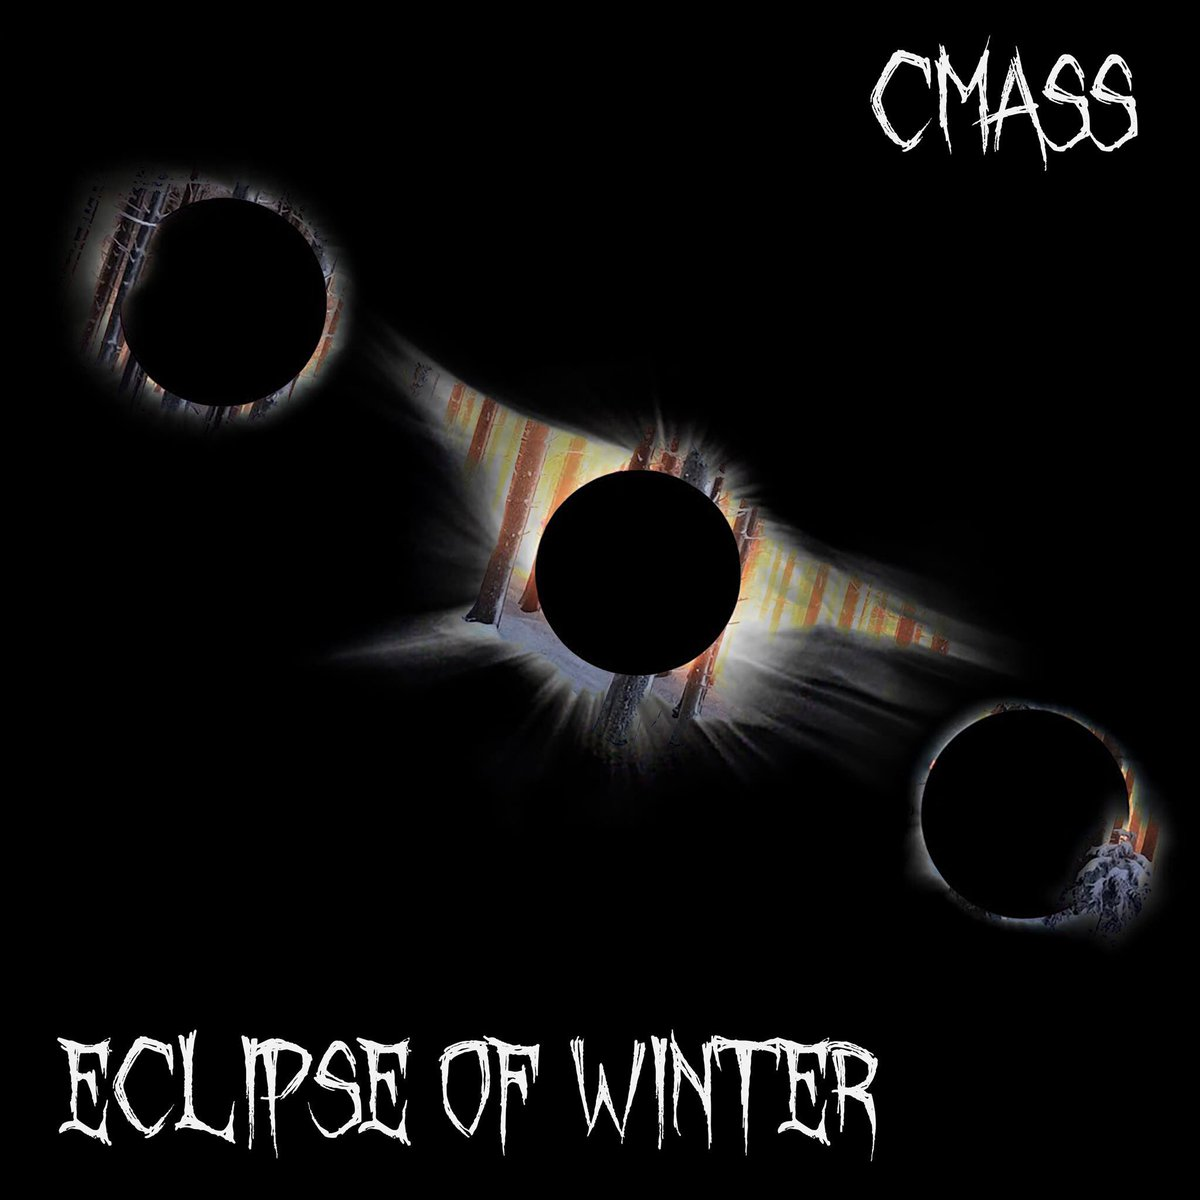 My brand new album #EclipseOfWinter is available right now on Spotify!  We put in more work on this one than we have on any other project and it shows.   Be sure to go stream it now! #CMASS